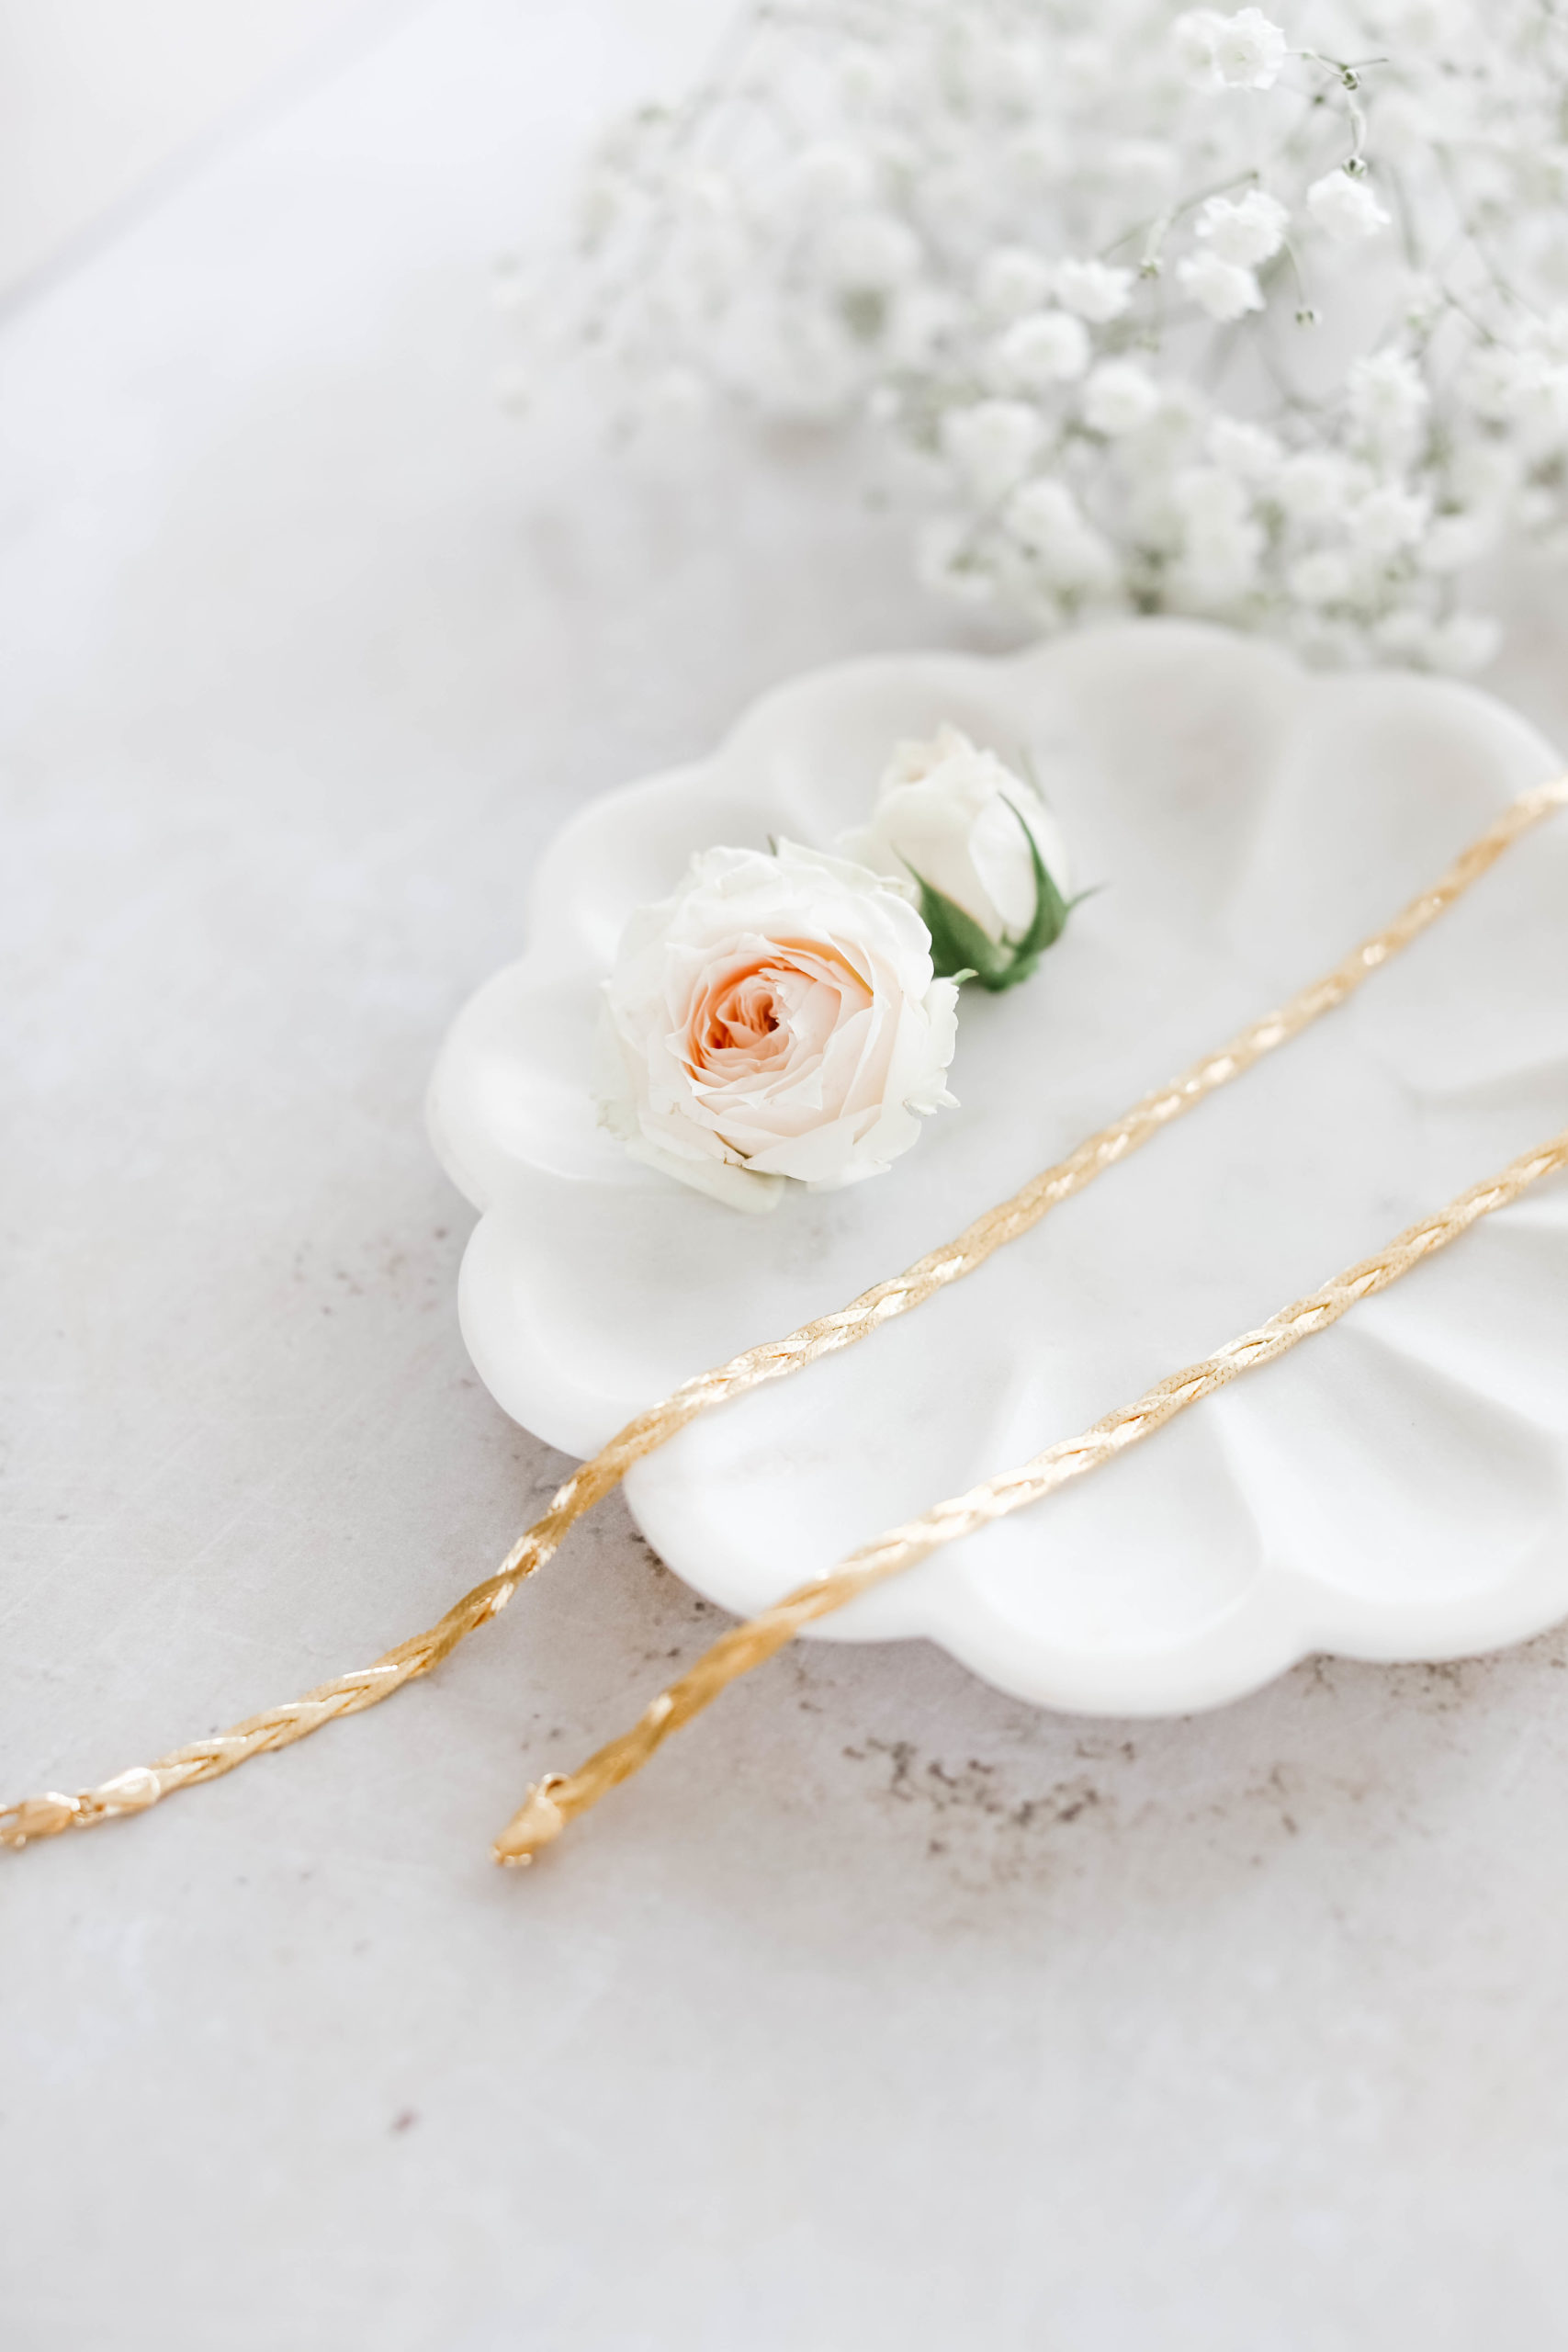 fraiche x so pretty gold herringbone bracelets in two lengths on a white tray with roses